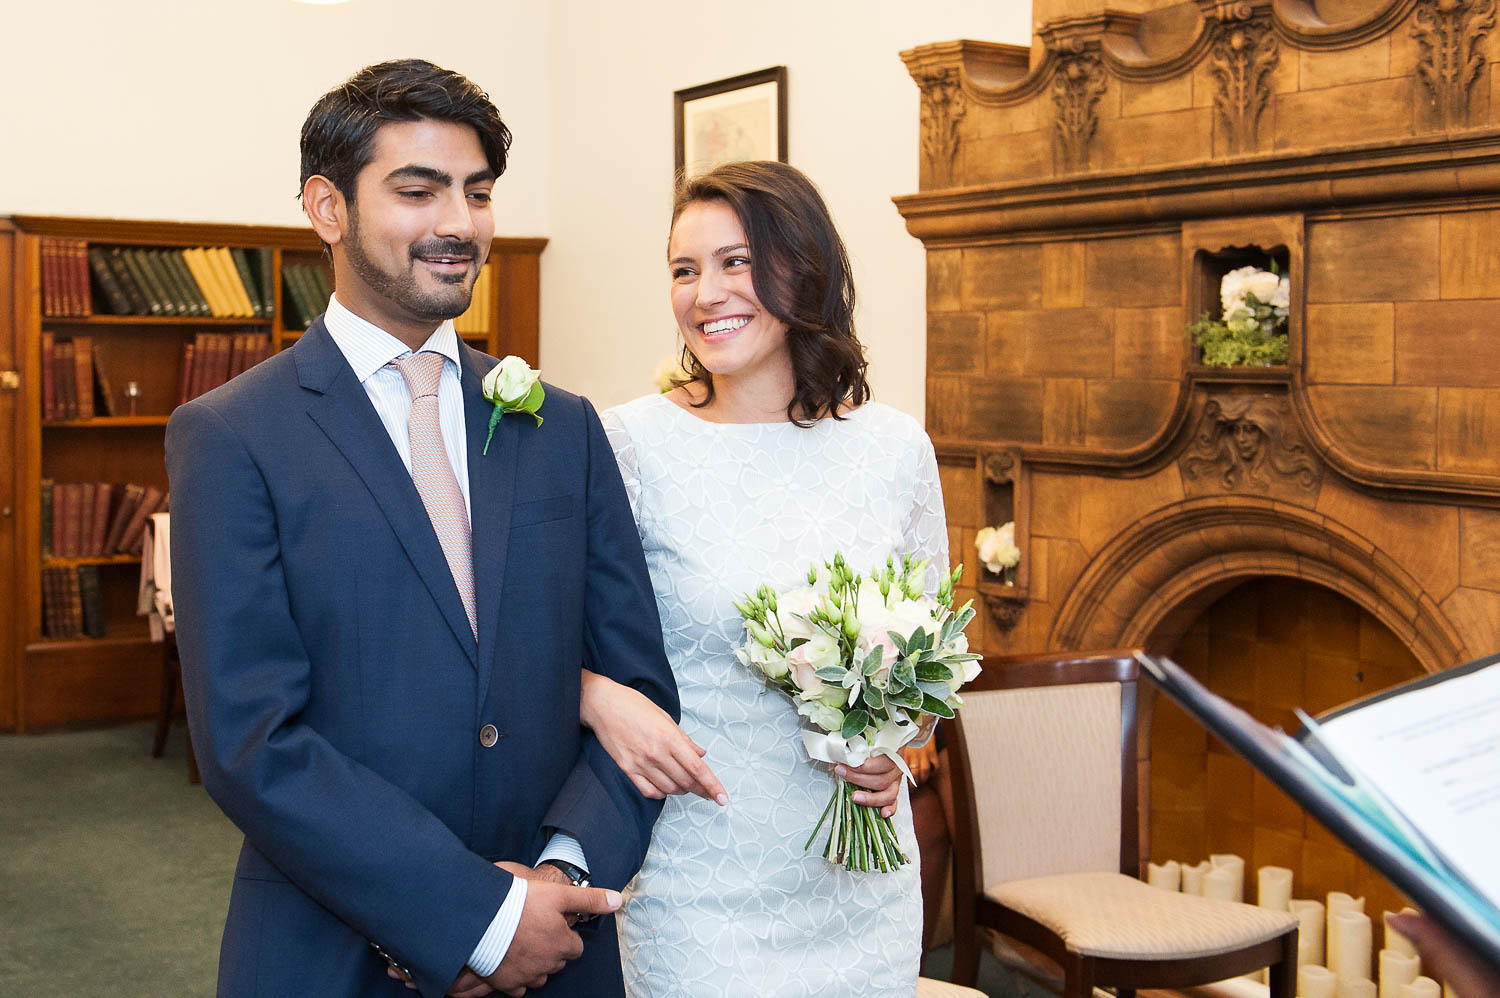 Mayfair Library wedding photographer Emma Duggan photographs small weddings with small photography packages.